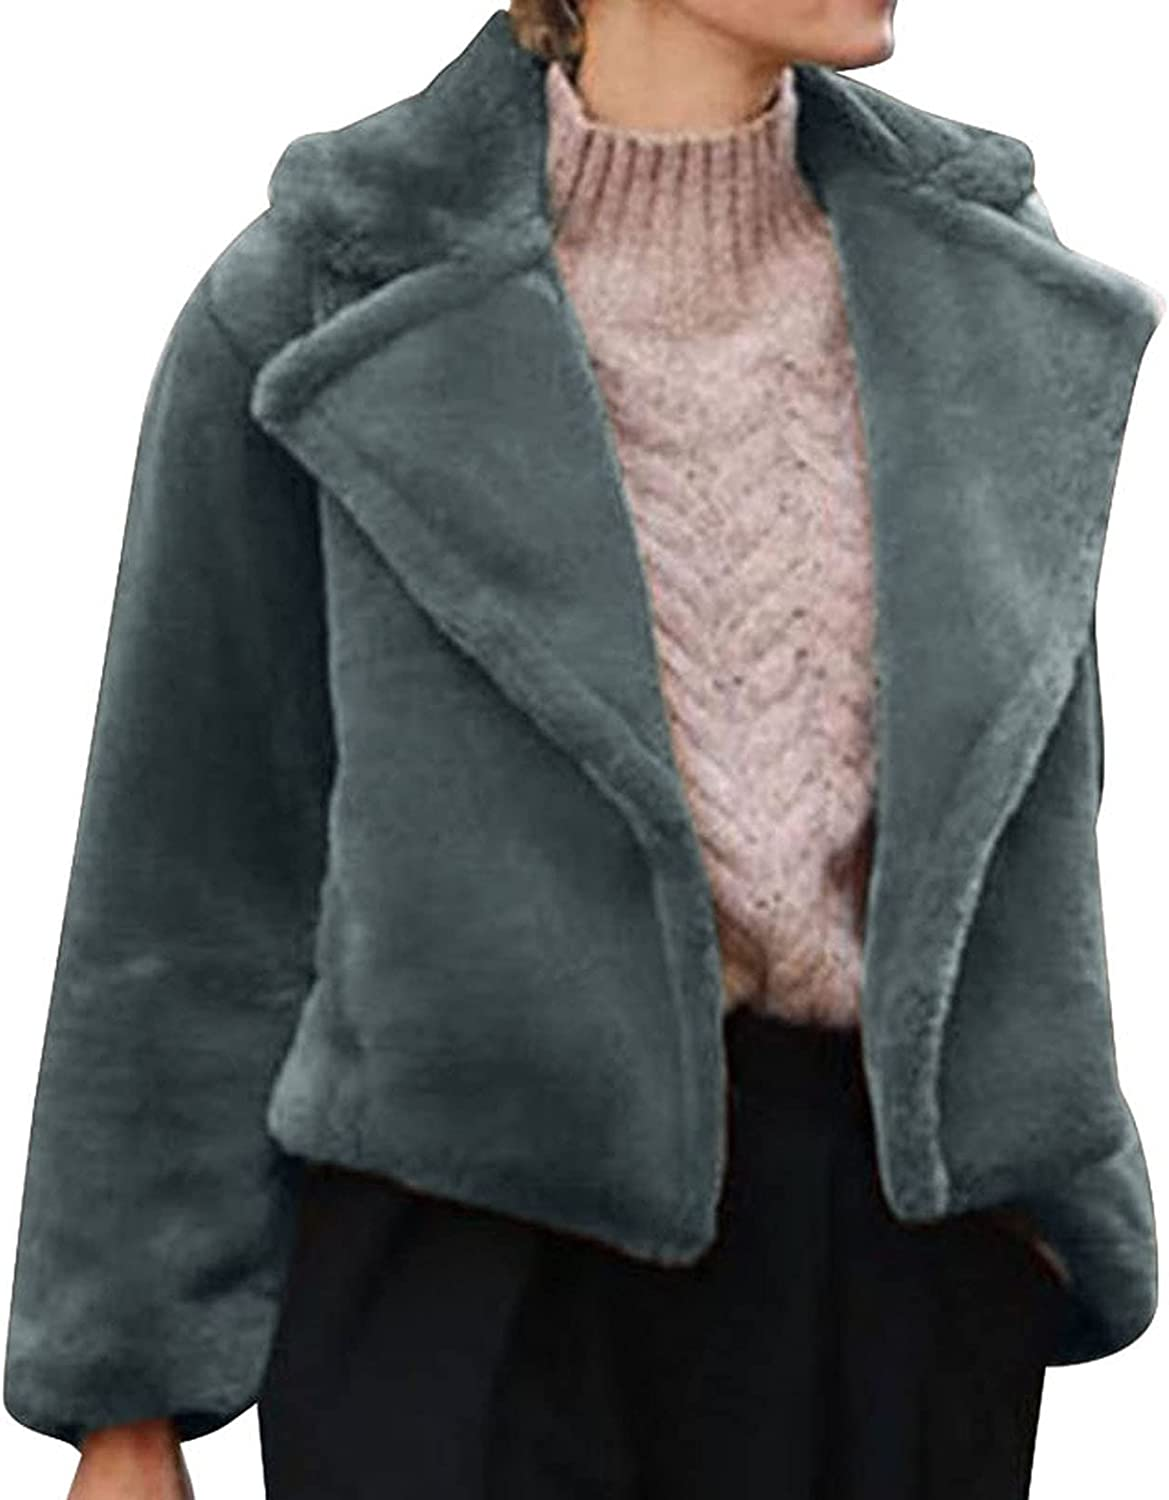 Crop Tops for Women Cardigan Sweater Stylish Lapel Collar Winter Chunky Casual Outwear Heavy Weight Soft Thick Coat